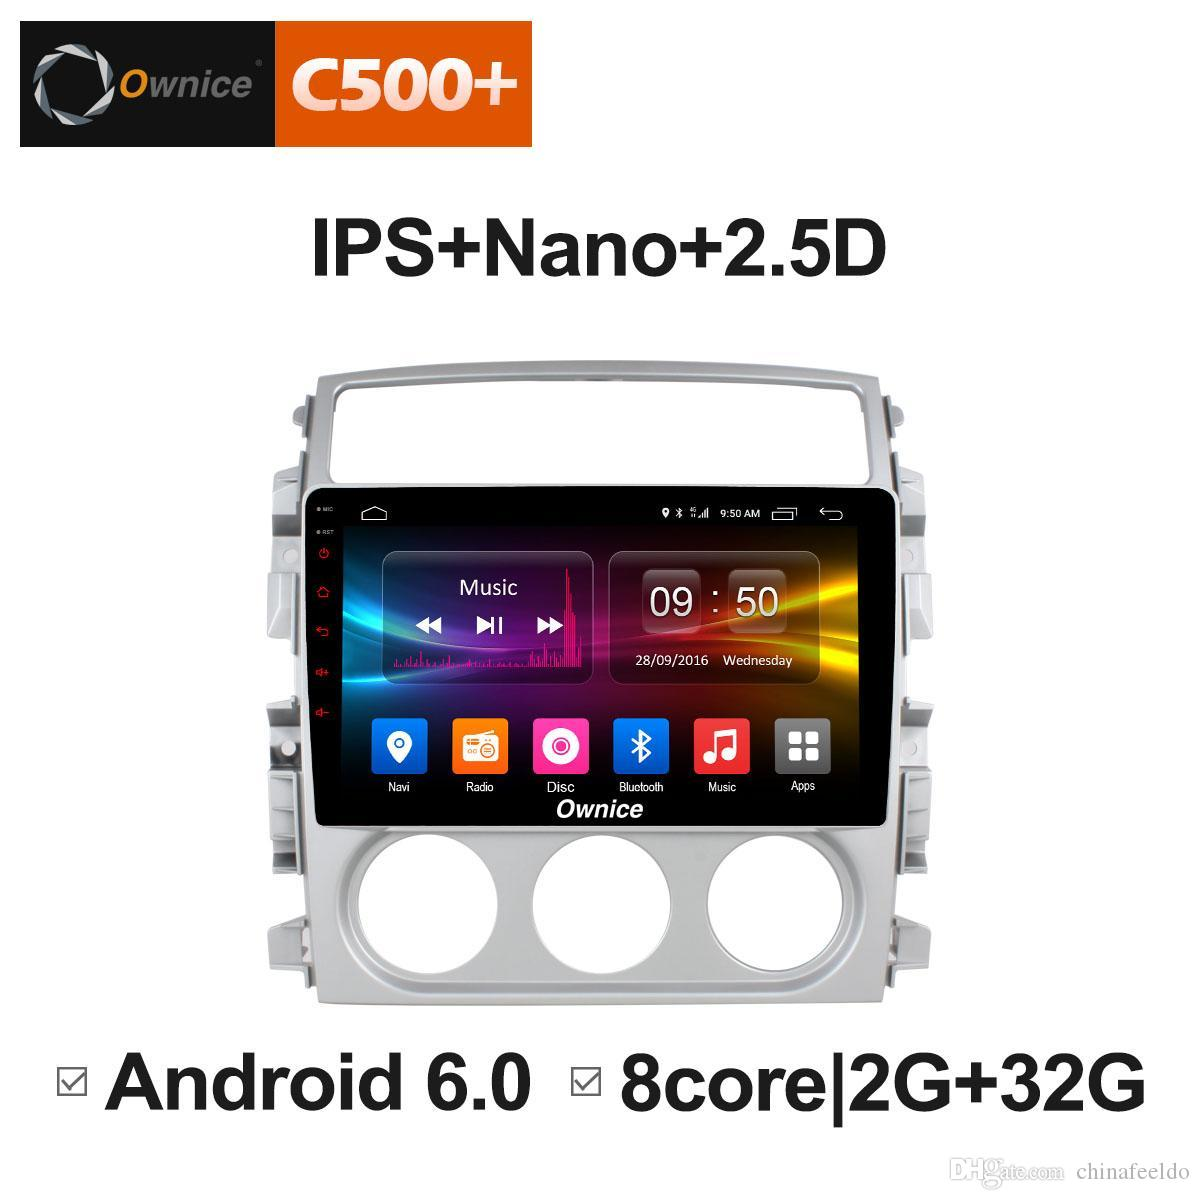 "9"" 2.5D Nano IPS Screen Android Octa Core/4G LTE Car Media Player With GPS RDS Radio/Bluetooth For Suzuki LIANA 2007-2013 #5867"